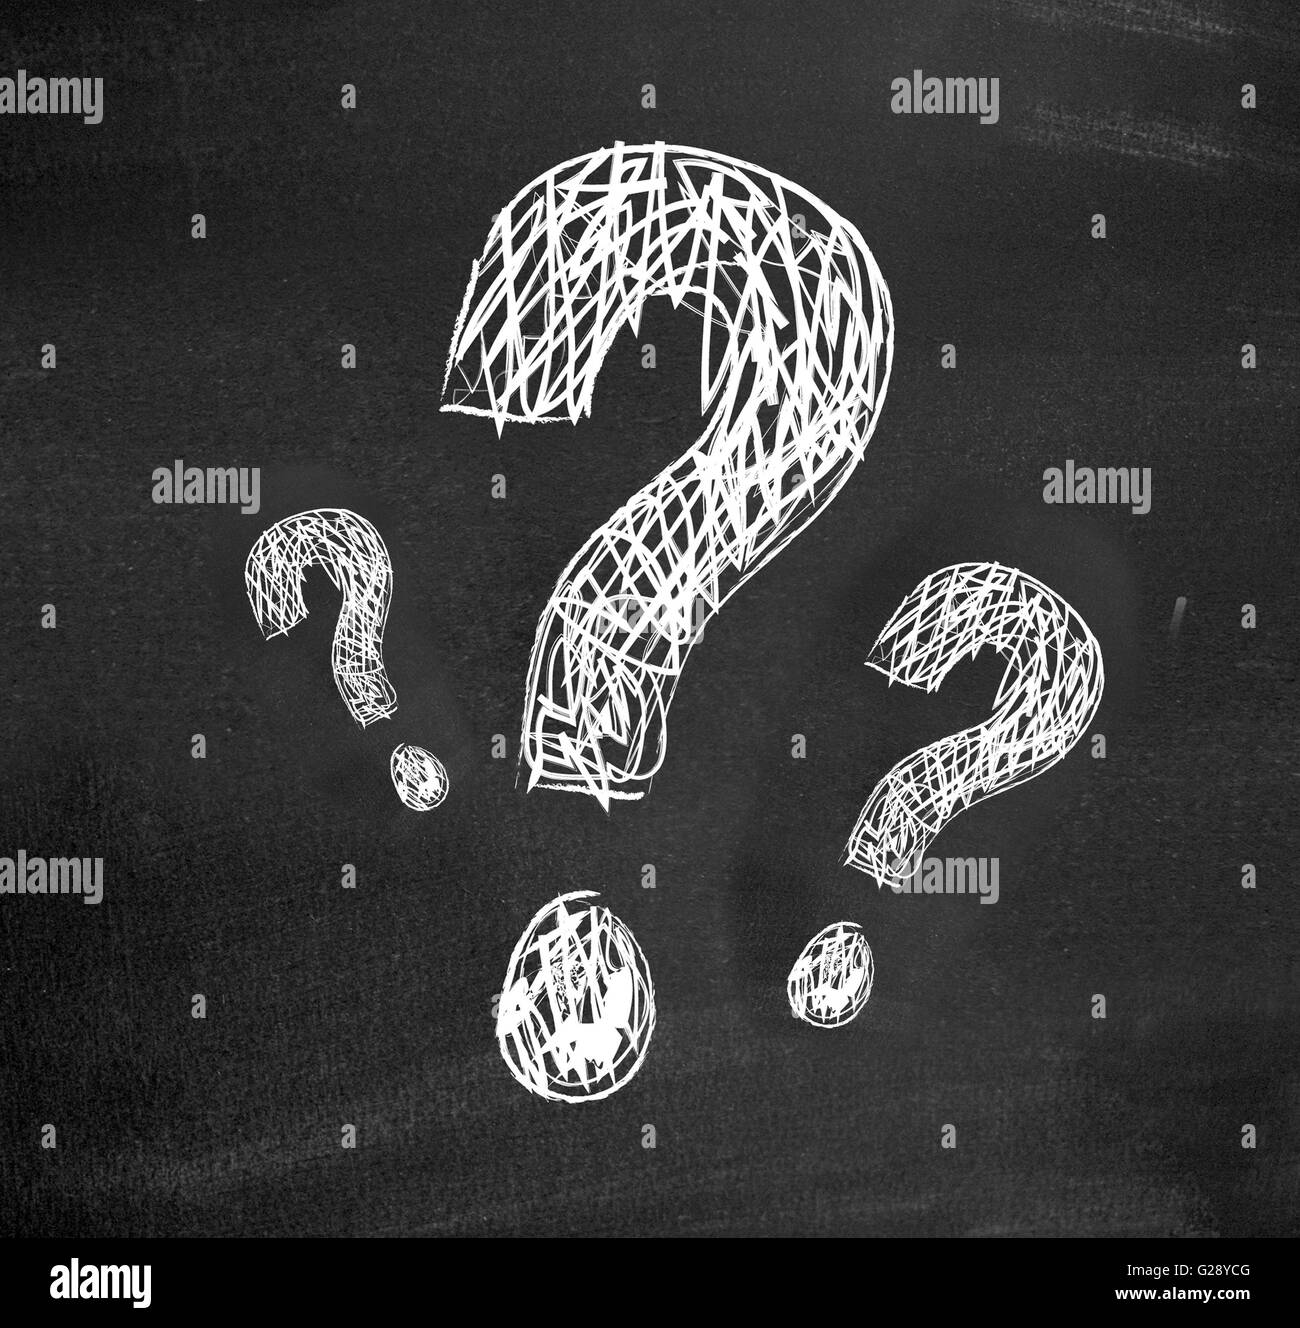 Questions on a blackboard - Stock Image